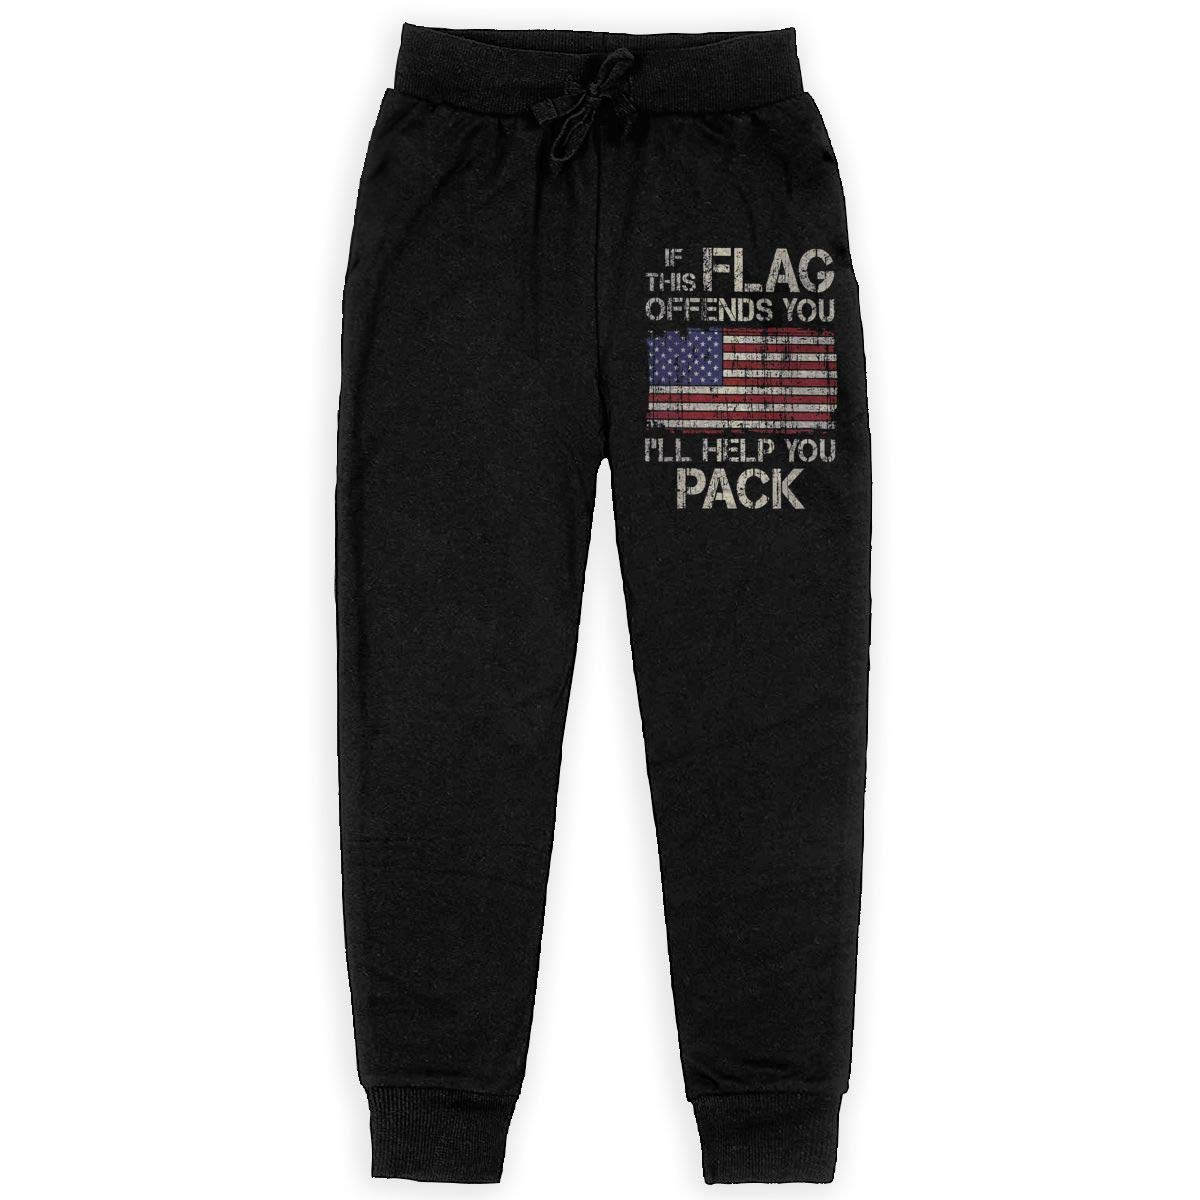 Girls Fleece Pants for Teen Boy WYZVK22 If This Flag Offends You Ill Help You Pack Soft//Cozy Sweatpants